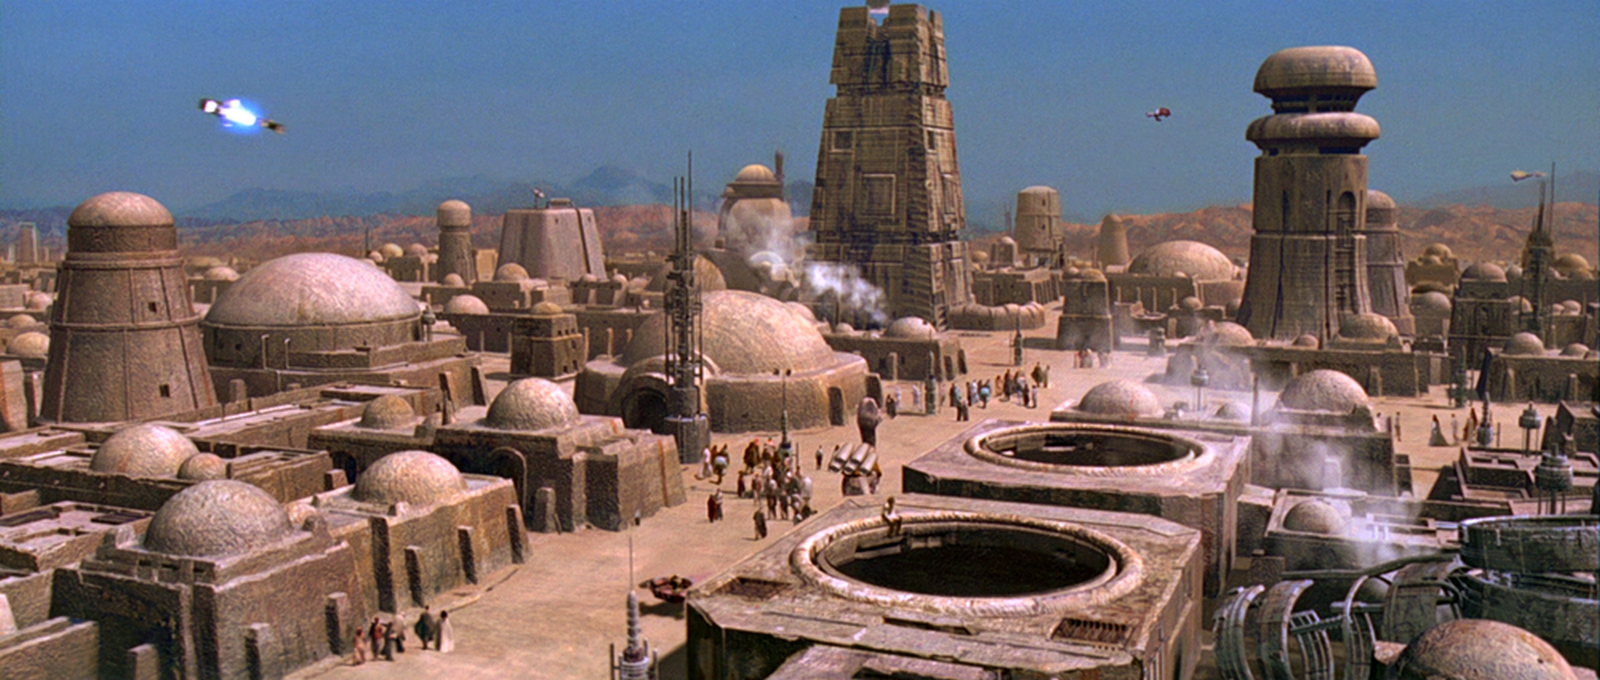 The Use of Fantasy Architecture in Movies and TV Shows - Sheet2